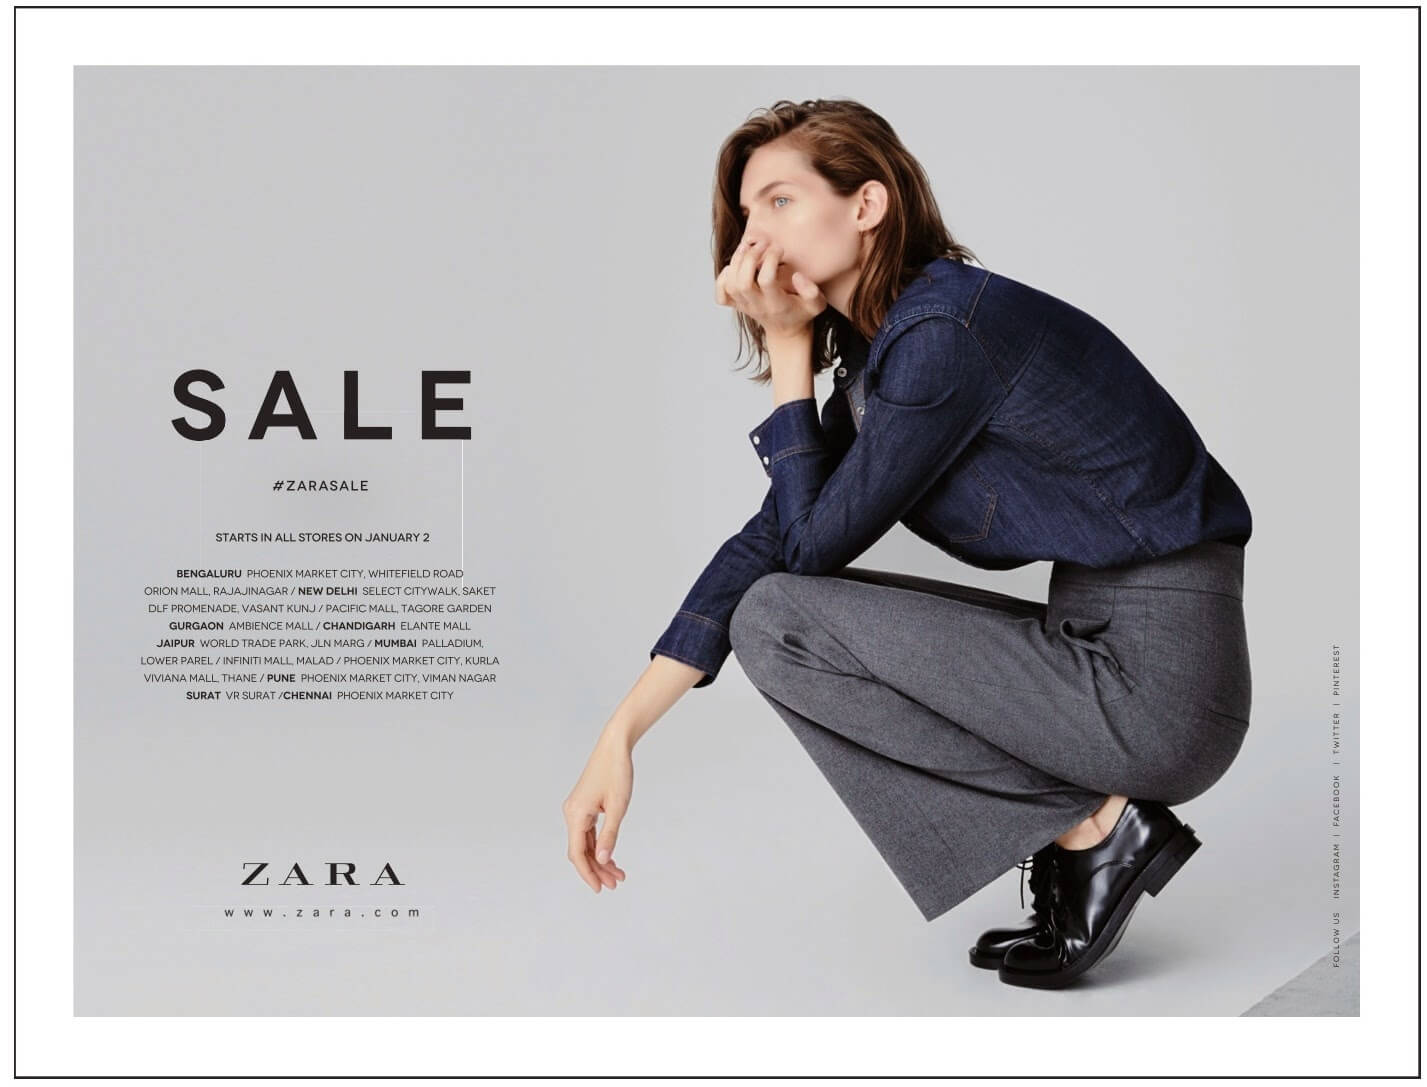 white-space-in-graphic-design-zara-ad